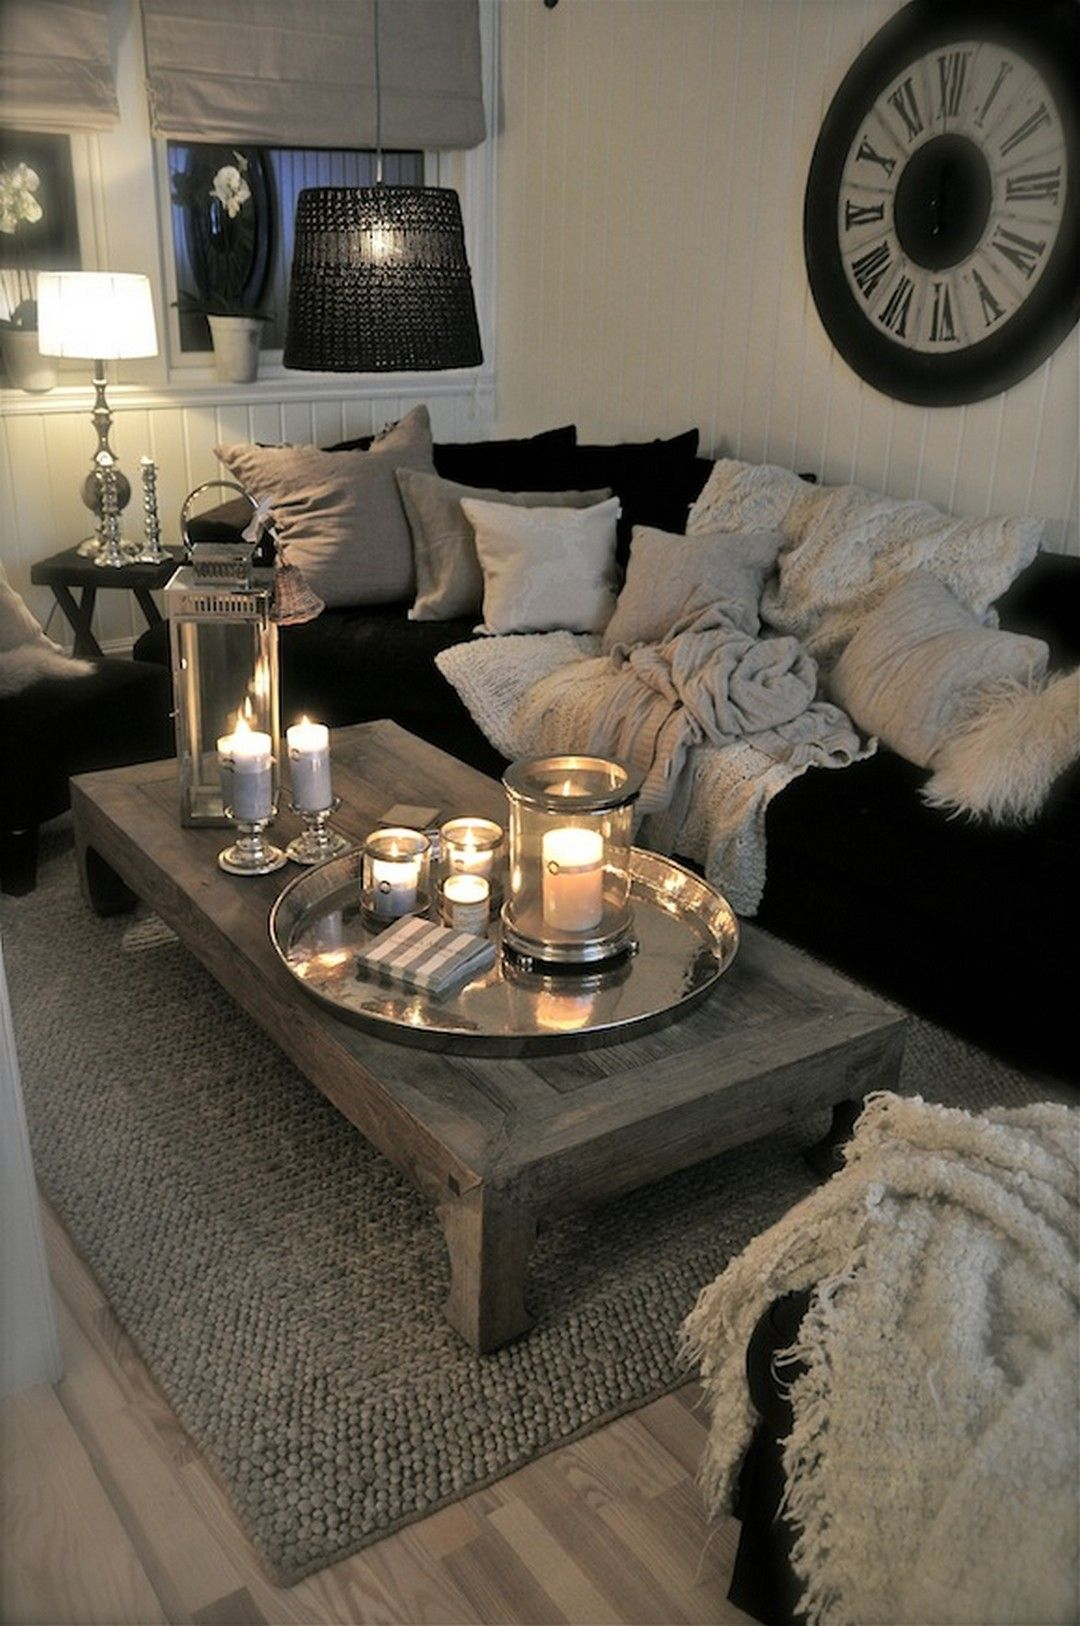 99 easy diy first apartement decorating ideas apartment - Decorating living room ideas pinterest ...